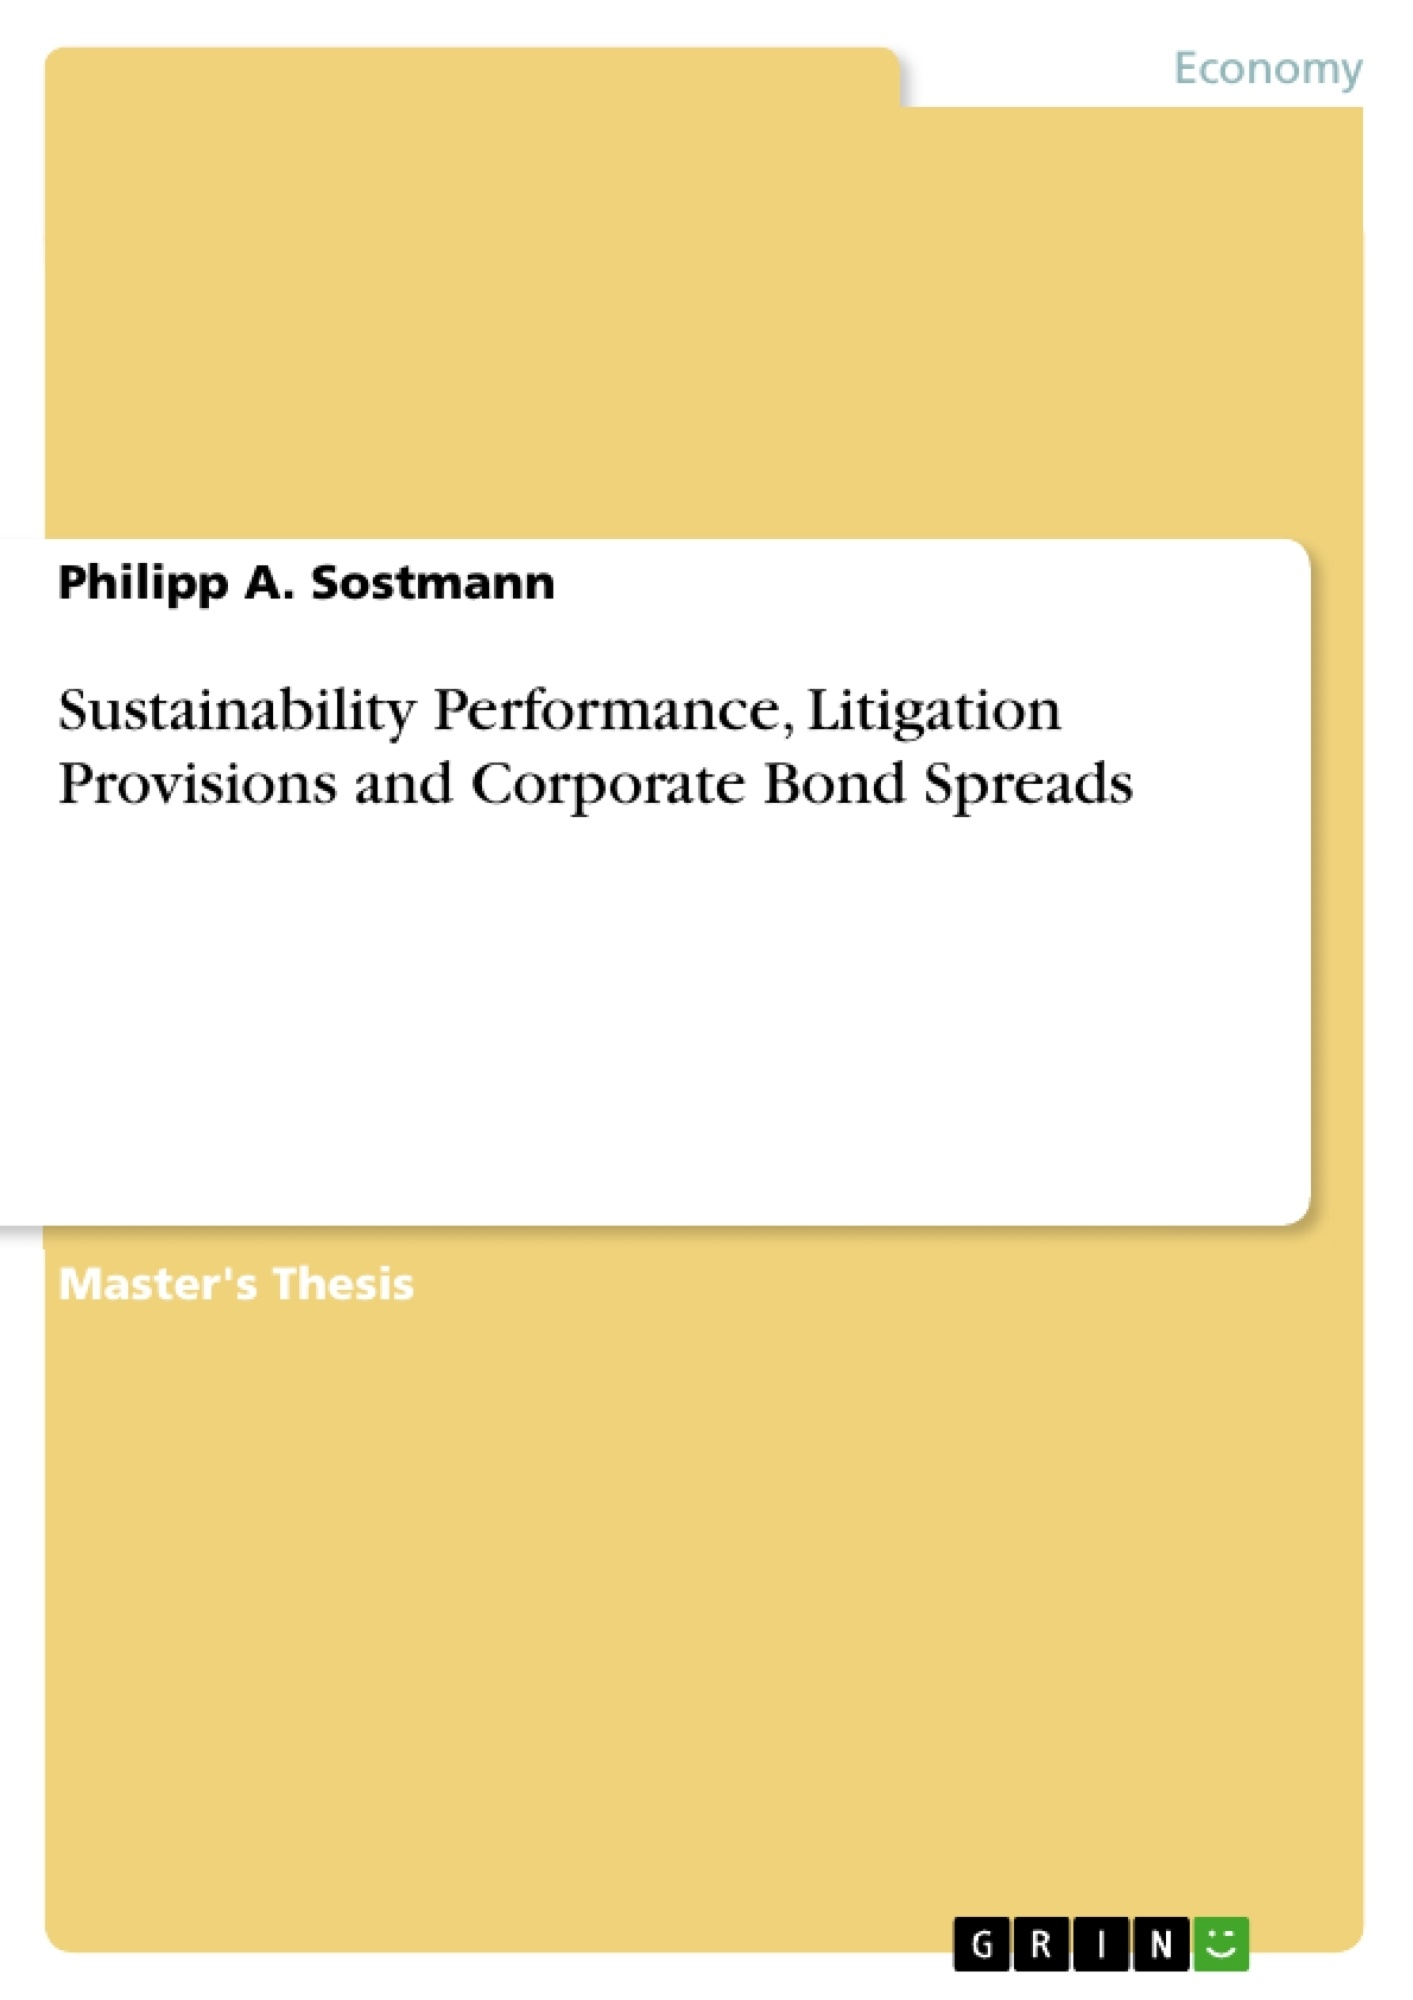 Title: Sustainability Performance, Litigation Provisions and Corporate Bond Spreads